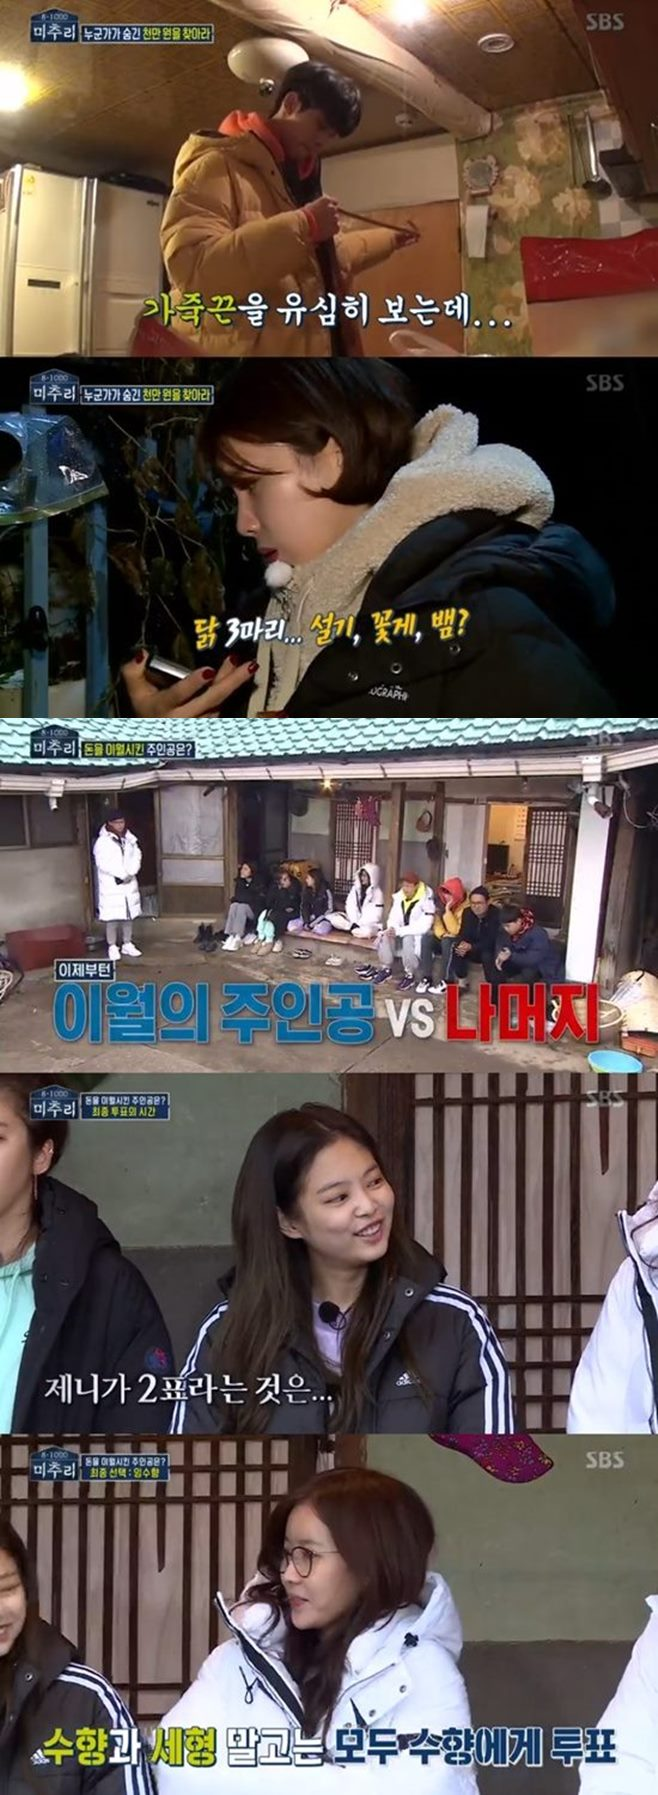 <p> 'Michu and'Jang Doyeon of reversal of the row(?)With the property Season 1 was finishing.</p><p>In the last 21 Days Night broadcast SBS TV 'Michu and 8-1000'('Michu'and), Yoo Jae-Suk, Kim Sang Ho, Yang Se-hyeong, Jang Doyeon, Son Dam-bi, Im Soo-hyang, River, SONGJIANG, Black Pink Jenny mystery track in town thrilling experience and 2000 only won the prize the heroine finding all the public.</p><p>This day the members are the hints to find the struggling, alone in the house, Jenny is ahead of the curve 1000 and only want to hide the culprits was suspected. Son Dam-bi plays SONGJIANG questioned him, but he has all asleep the dawn to break into the room you picked no doubt bought.</p><p>The culprit when you hit all the members in the name of 2000 but want to donate, the culprit is not the culprit 2000 but want to acquire the rule. The final vote in 2 tables, Im Soo-hyang, this whopping 6 votes, and the finalists come up.</p><p>But surprisingly the culprit is Jang Doyeon. Jang Doyeon - all reasoning, when the only real hint of the noticed, and only want to acquire it and the prize this month for the million circles on the legs hidden.</p><p>Yang Se-hyeong is a fluffy feather for Jang Doyeon these criminals will not be sure. But Jang Doyeon who is than the first thousand million want to find intelligent killer, reborn.</p><p>Meanwhile 'Michu'and  the first part 6 with planning, was one of the viewers of the hot reaction is next week, from the season 2 broadcast. Season 2, Too 6 side effects planning.</p>